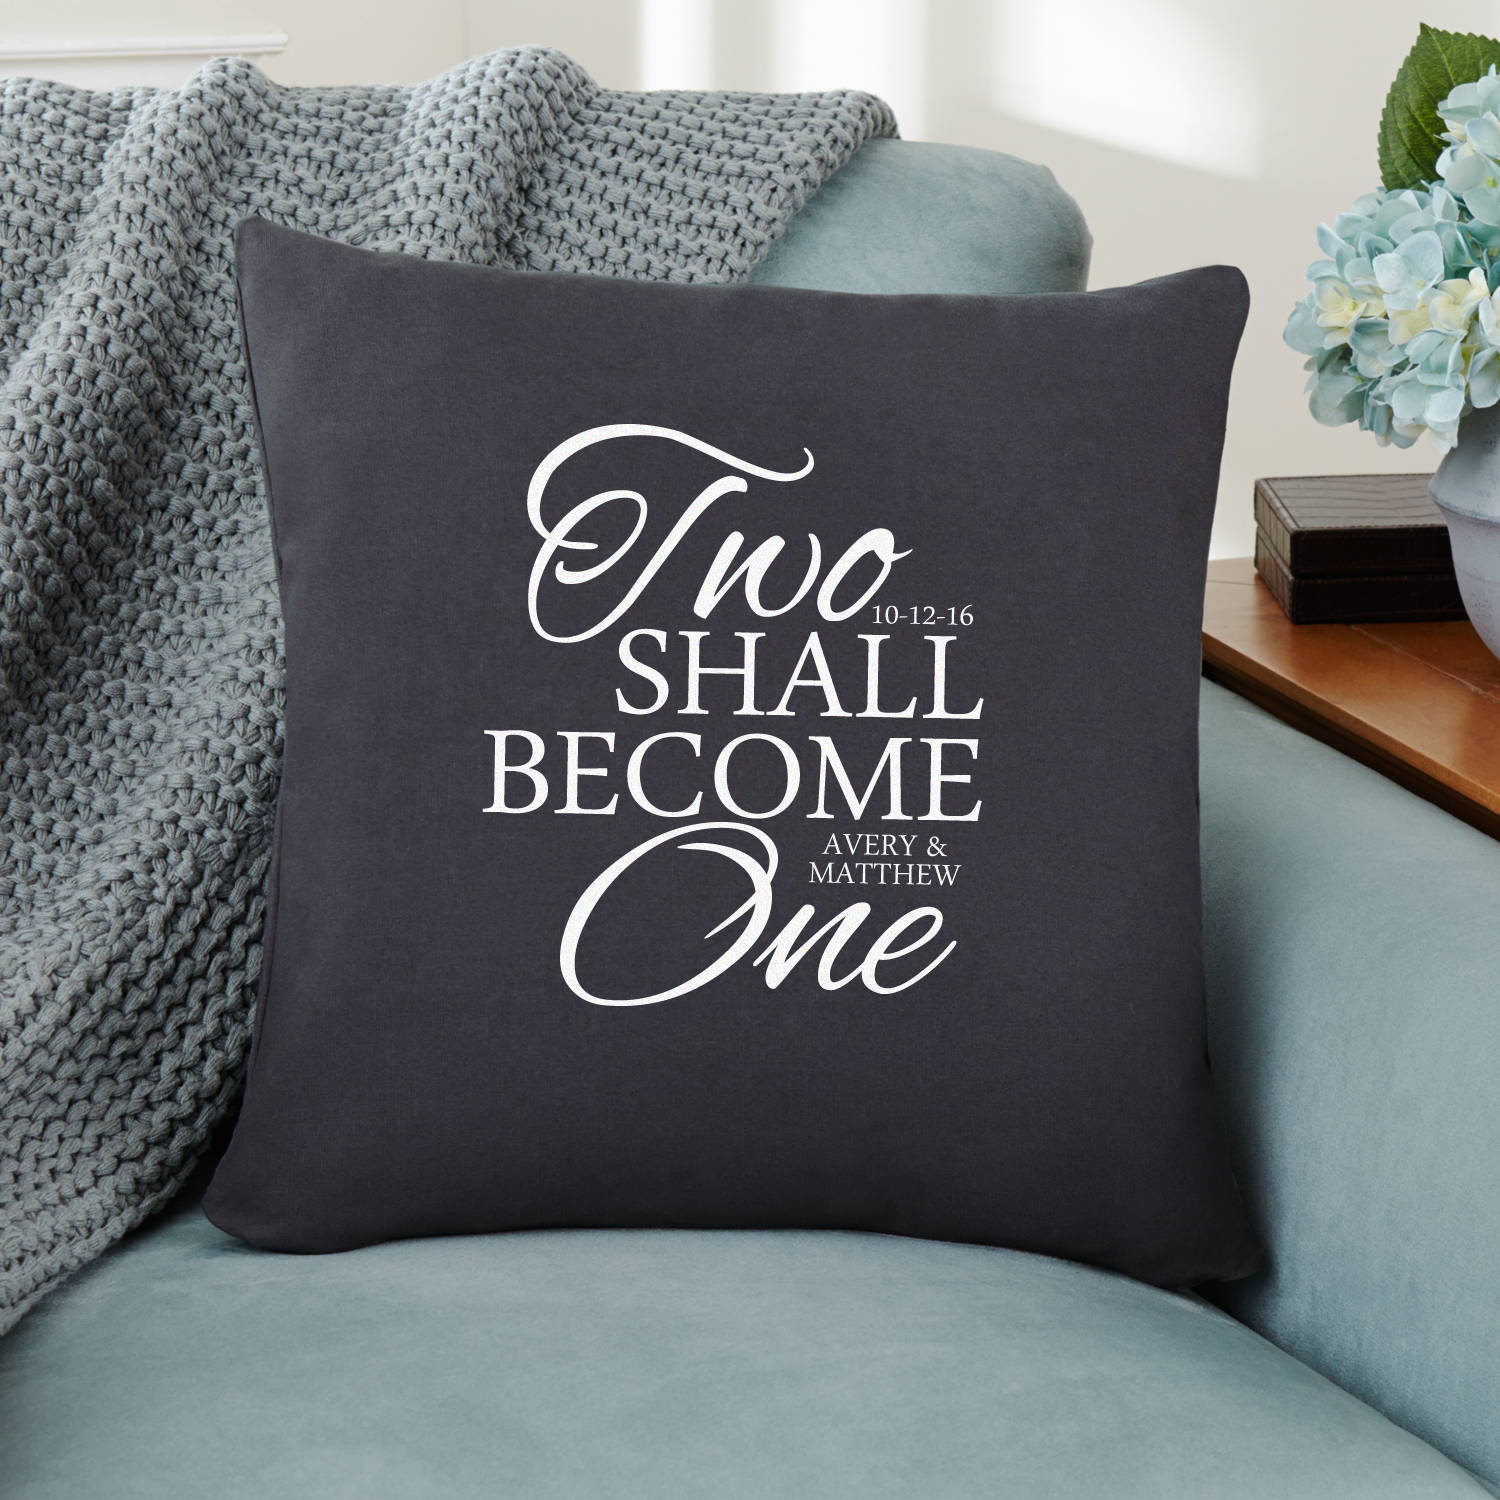 Personalized Two Become One Throw Pillow